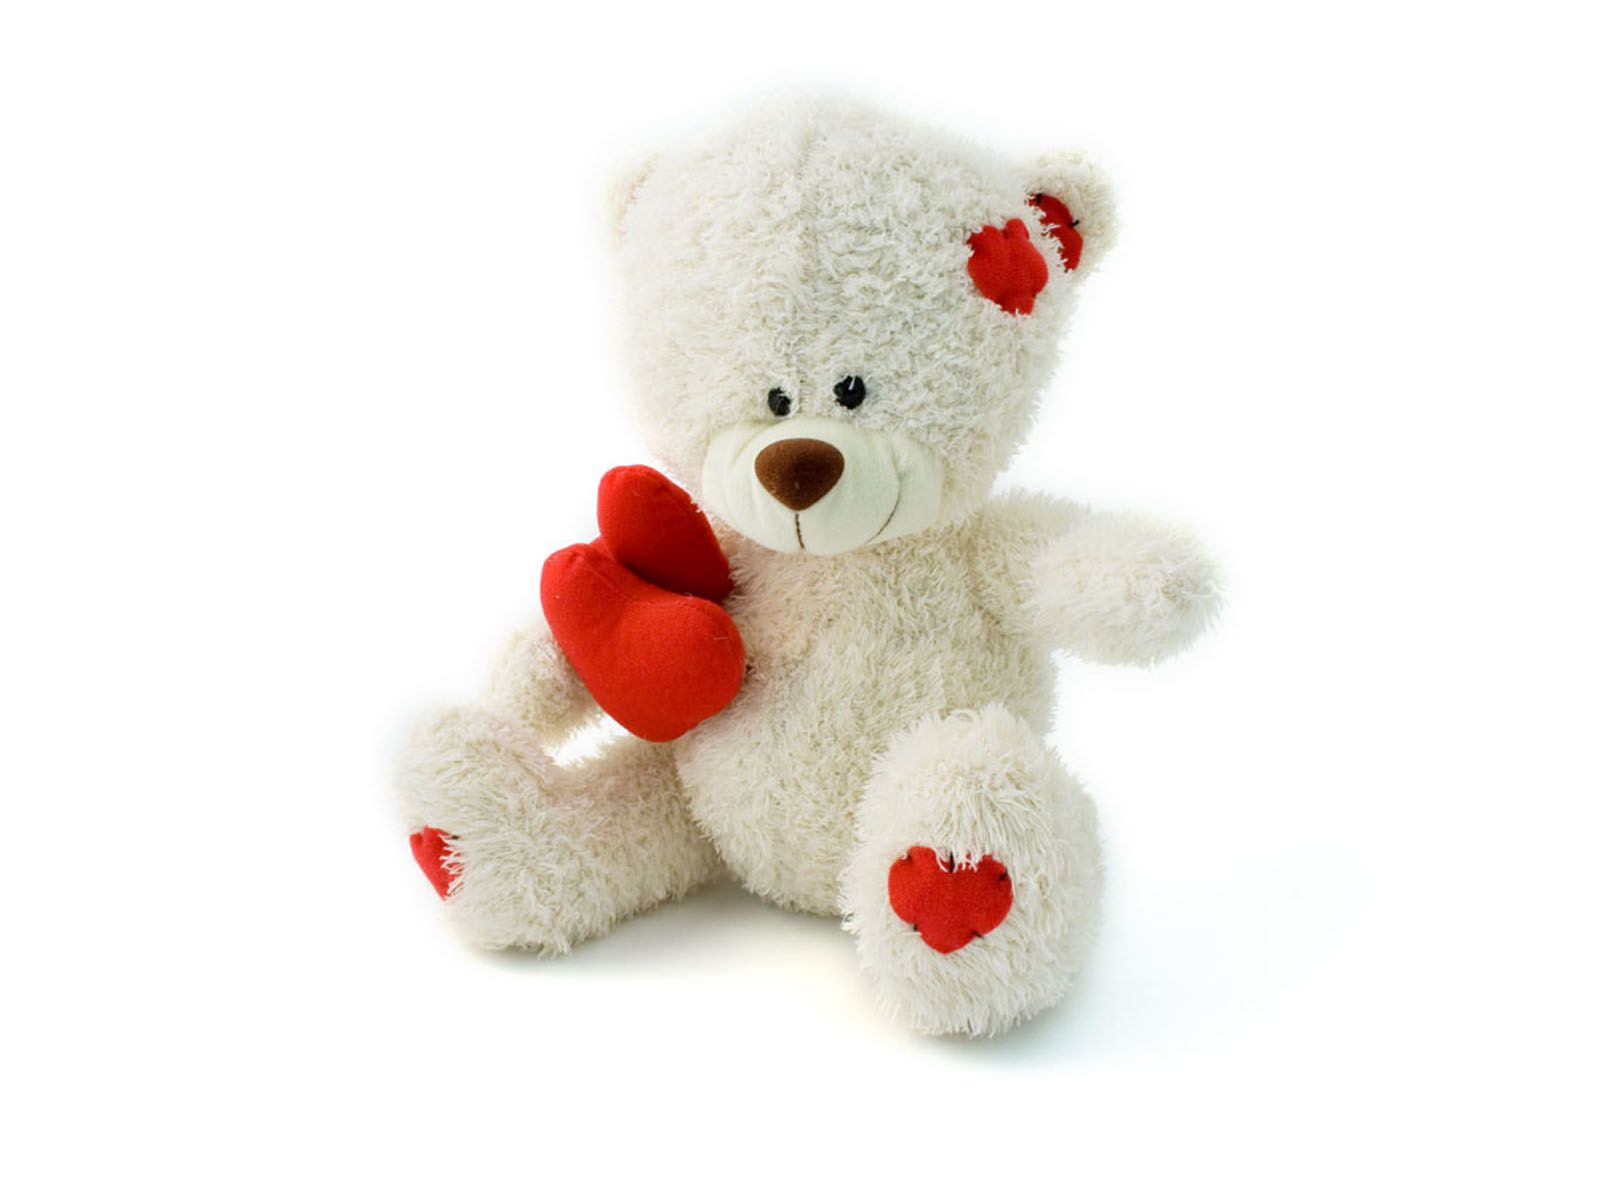 Cute Love Teddy Bear Wallpaper